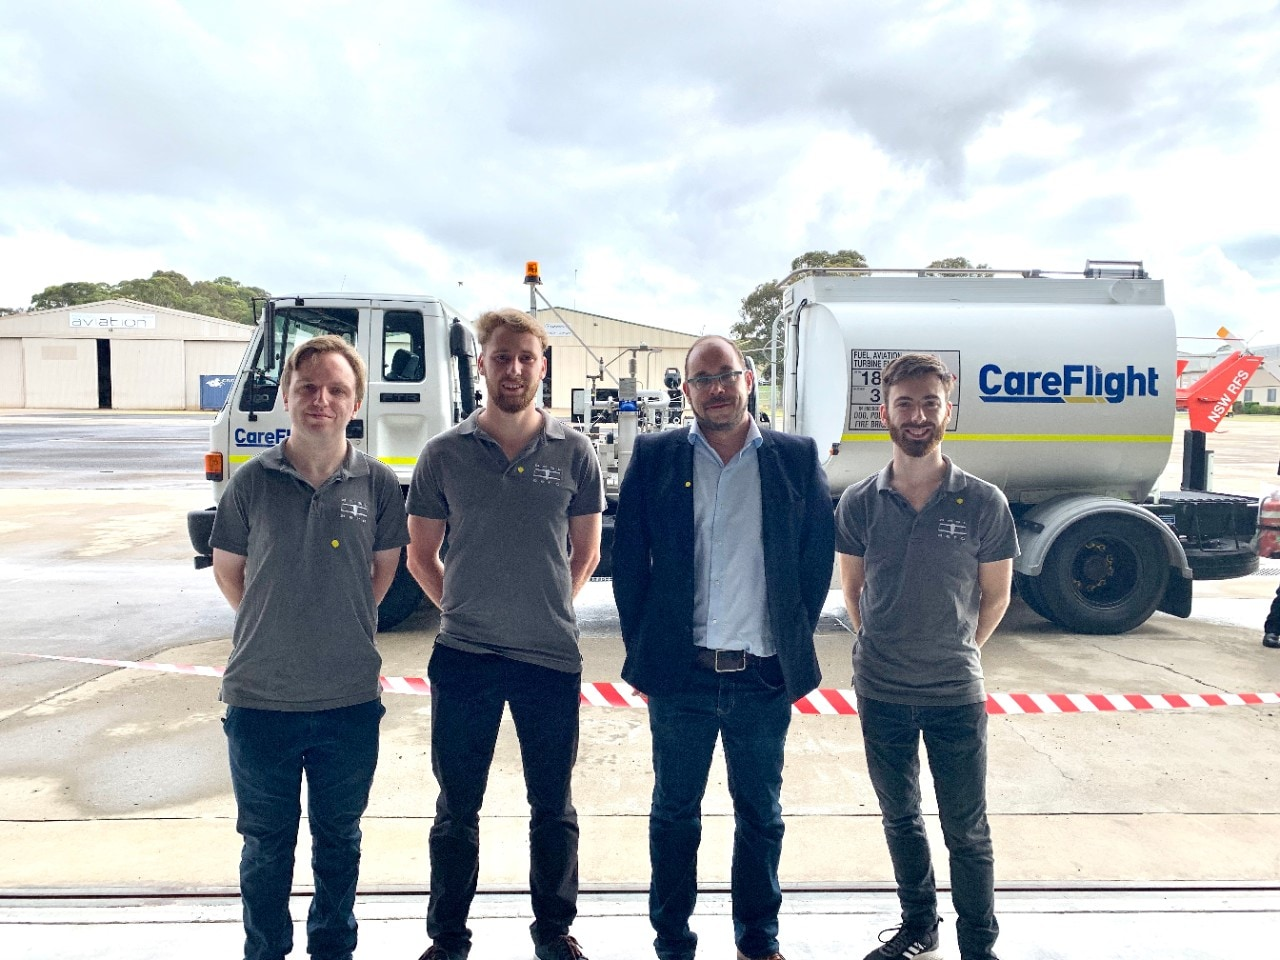 L-R: USYD graduate and AMSL Aero engineer Joshua Clement-Churn, USYD engineering student Kieran Crayn, Associate Professor Dries Verstraete, USYD graduate and AMSL Aero engineer John Wilson